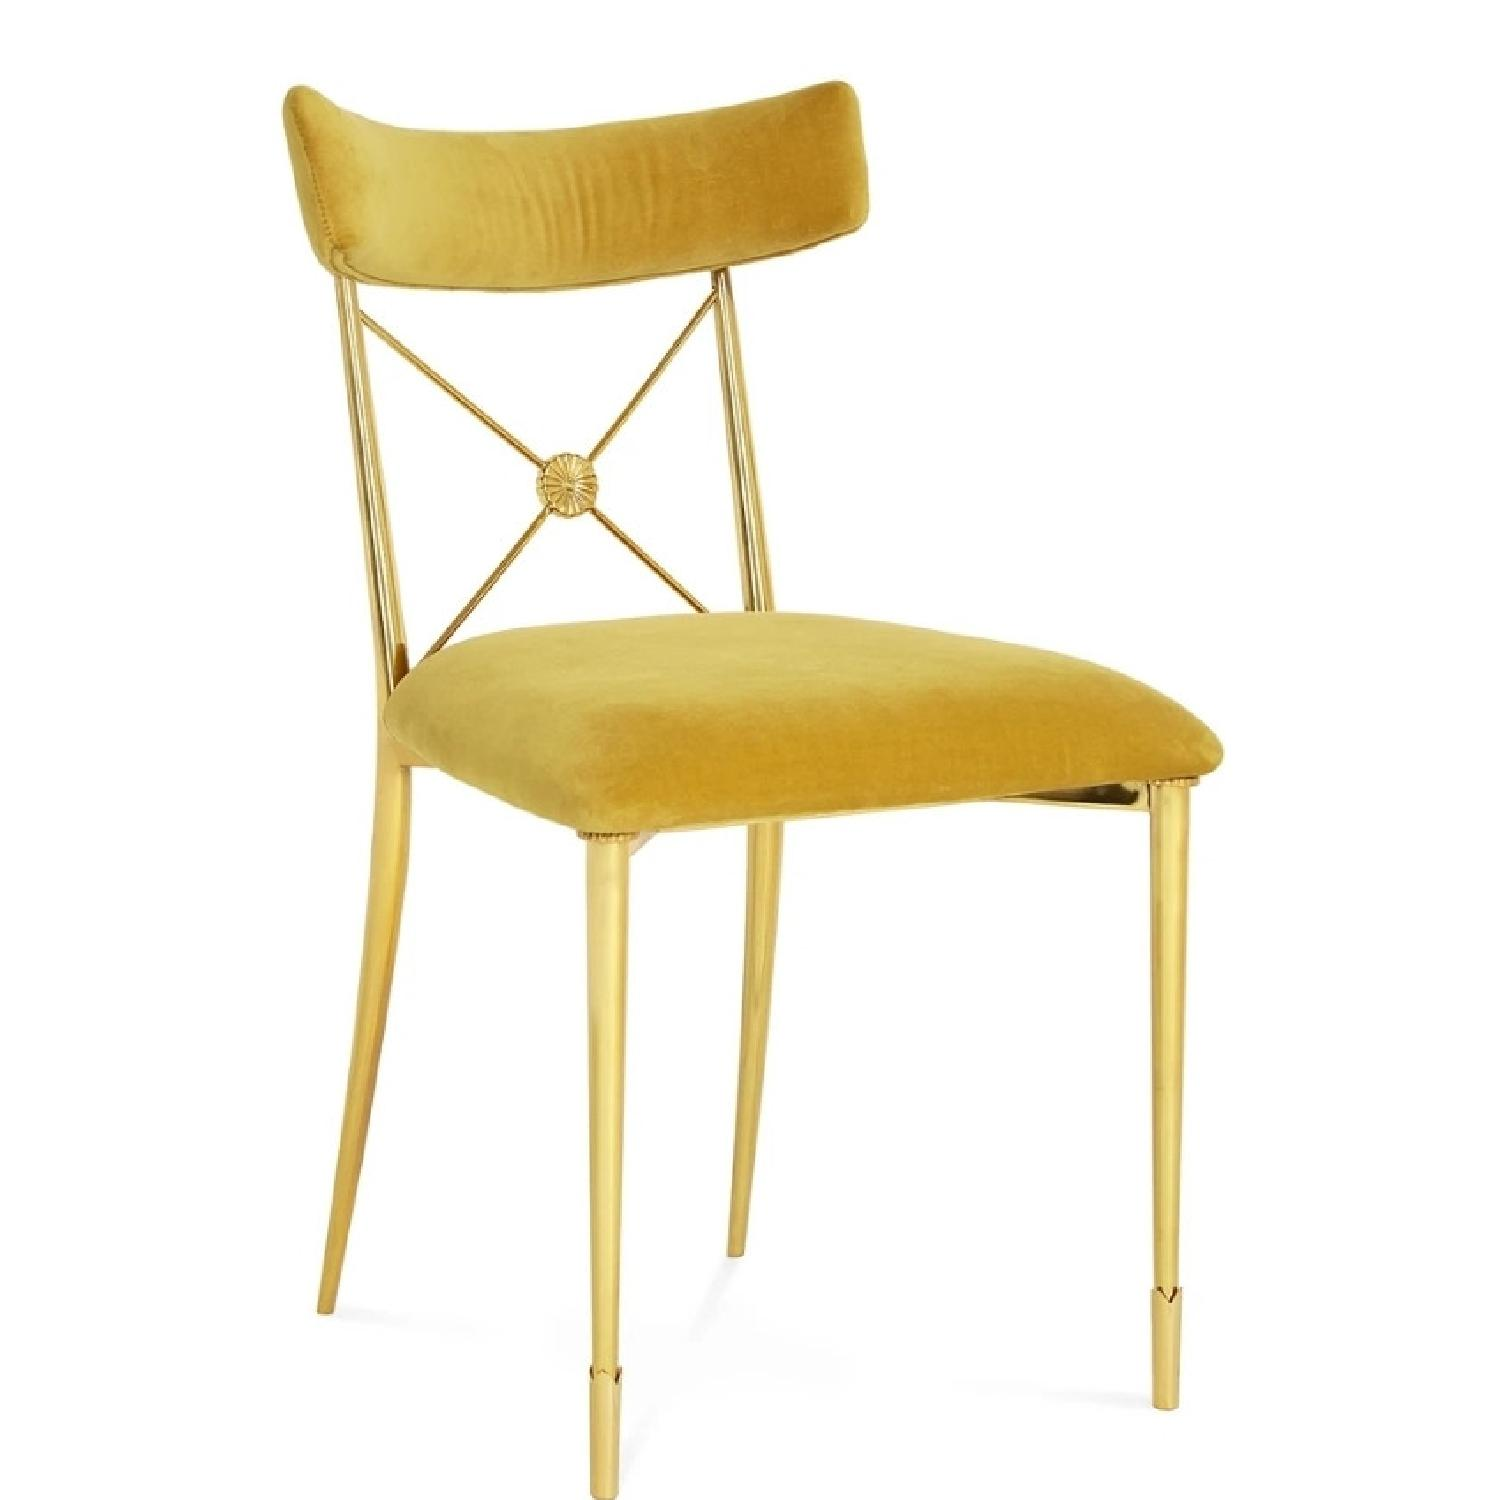 Jonathan Adler Riding Dining Chair (Set of 2) - image-6